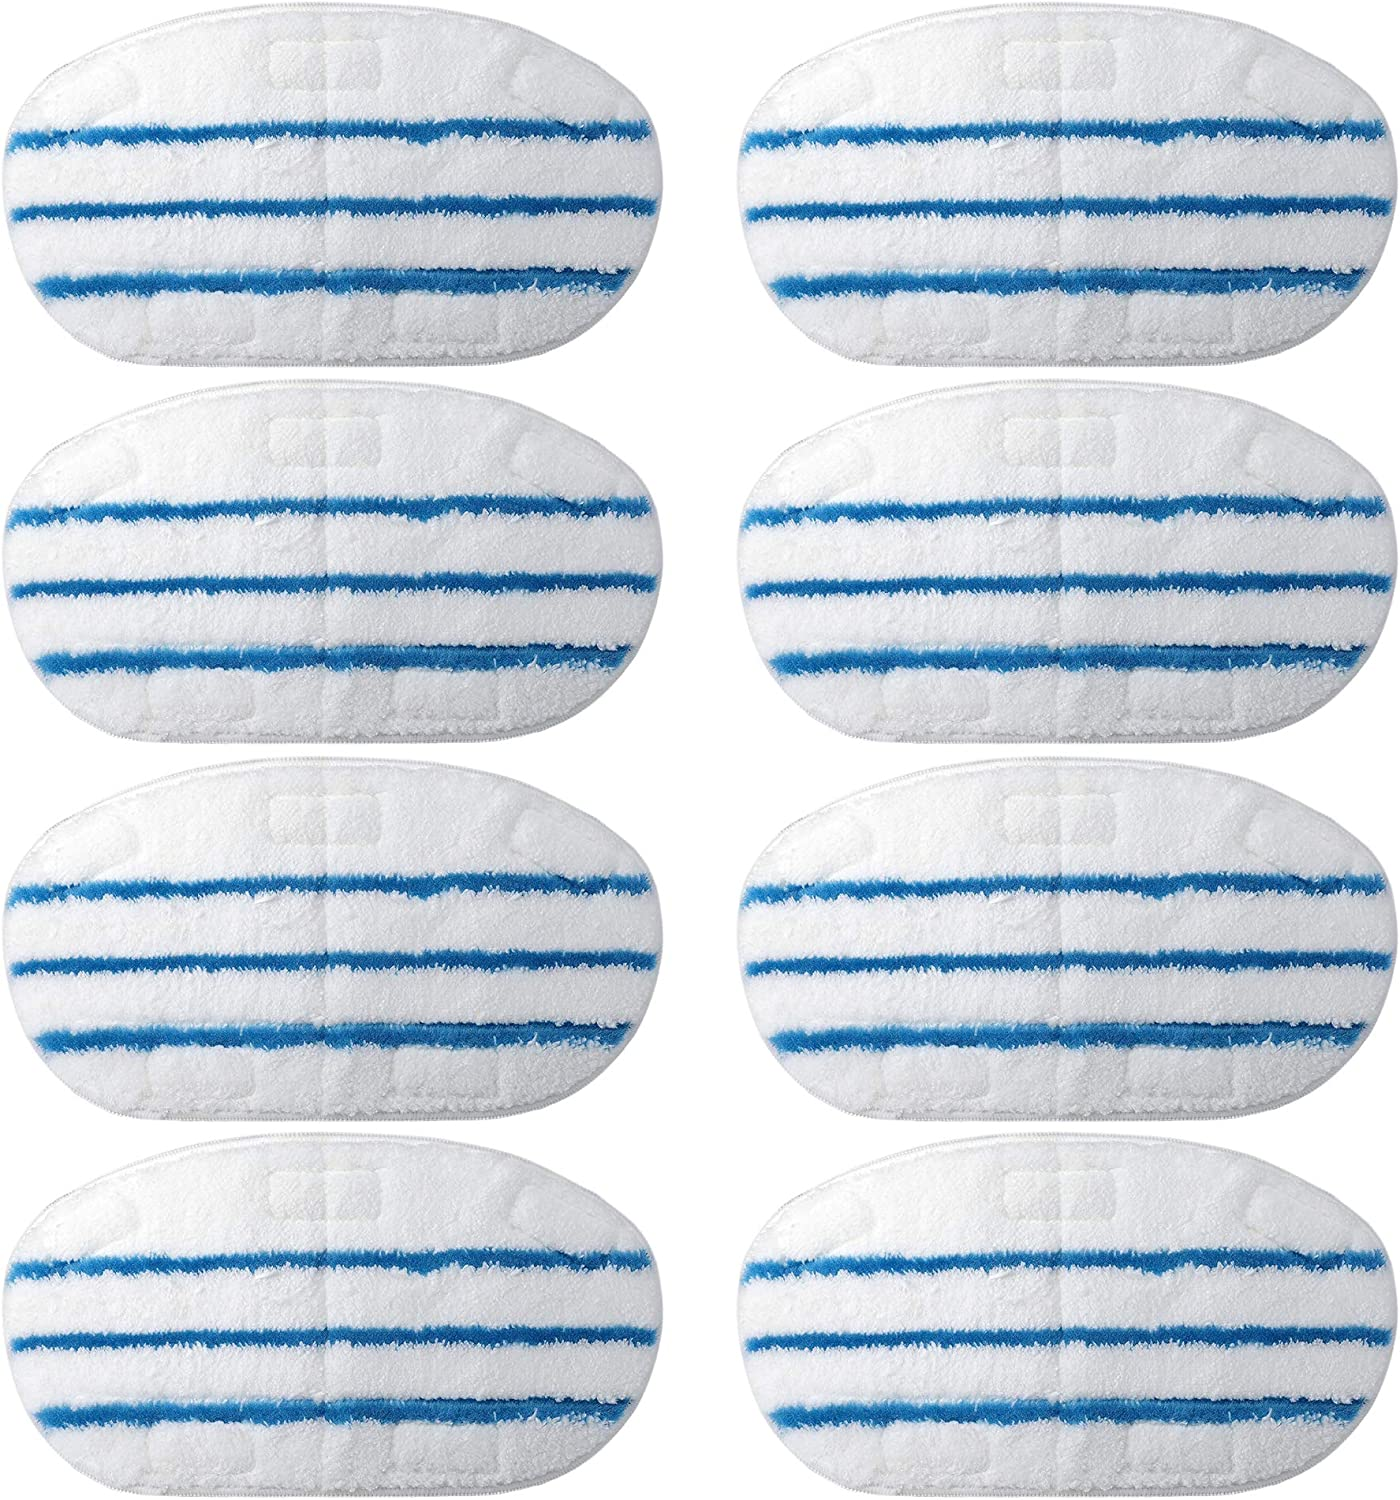 F Flammi 8 Pack PurSteam Steam Mop Pad Replacement Microfiber Washable Pads for ThermaPro 10-in-1